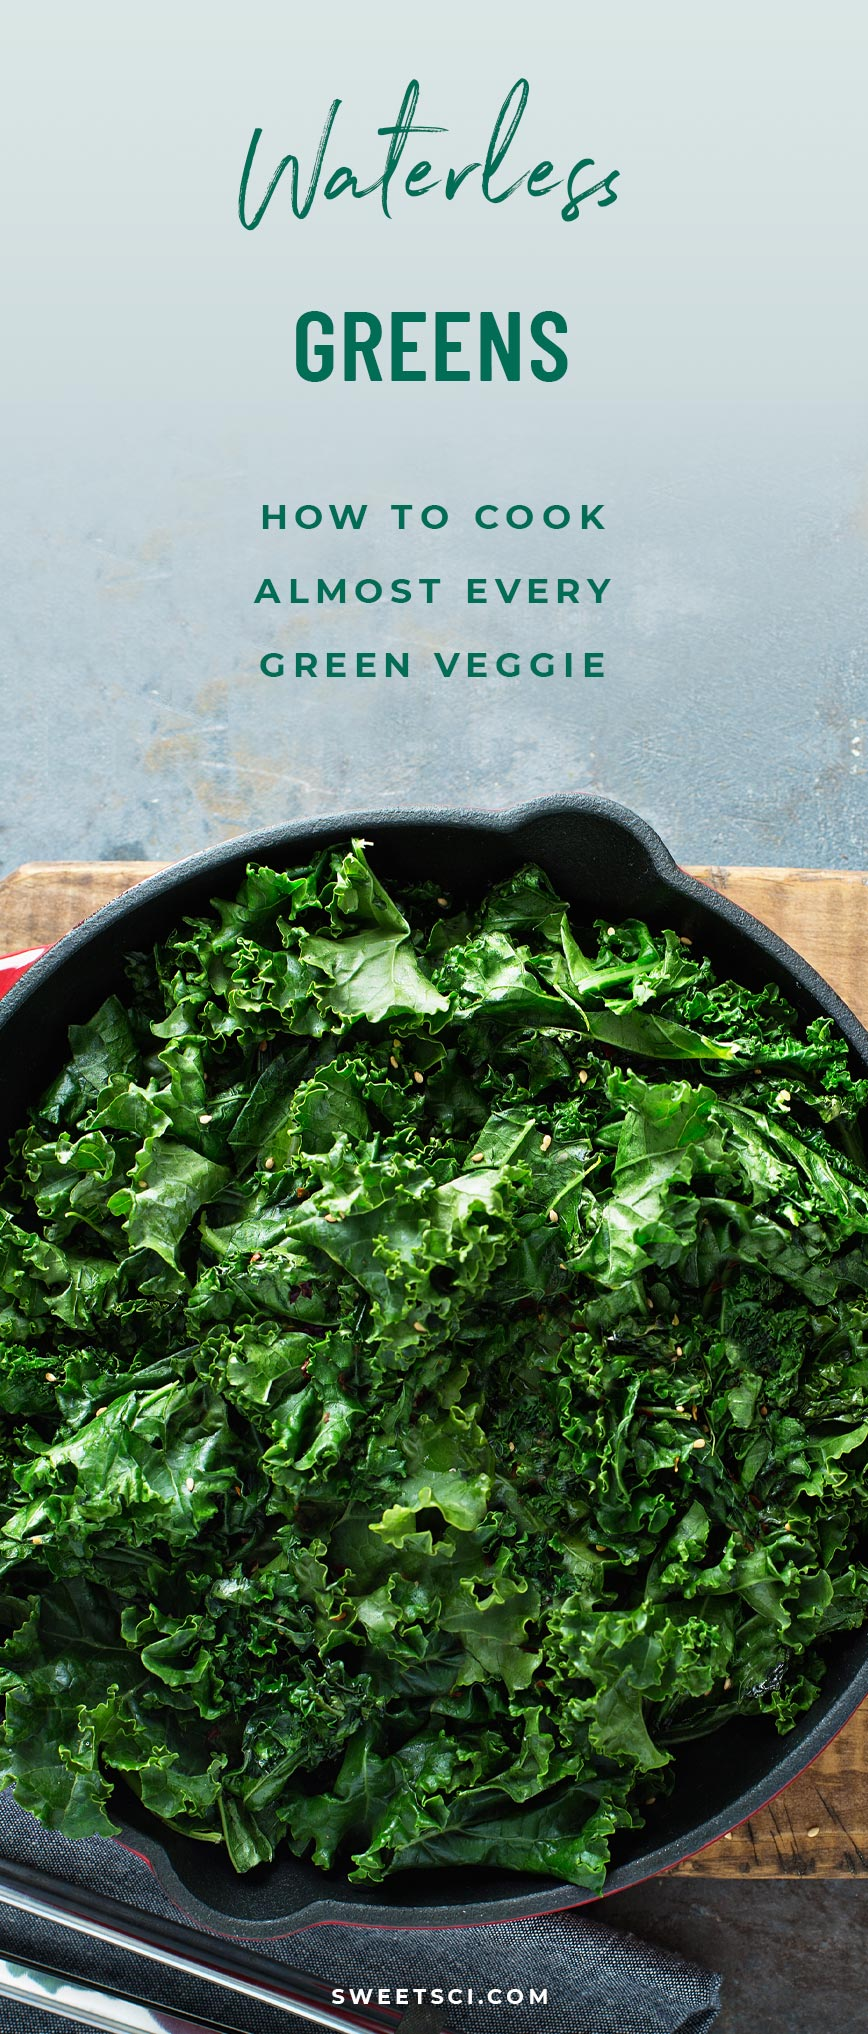 Waterless Greens Recipe: kale, broccoli, asparagus, brussels sprouts, water, sea salt, how to cook veggies - Sweet Science Nutrition & Wellness, Healthy Sobriety with health coach Elena Skroznikova